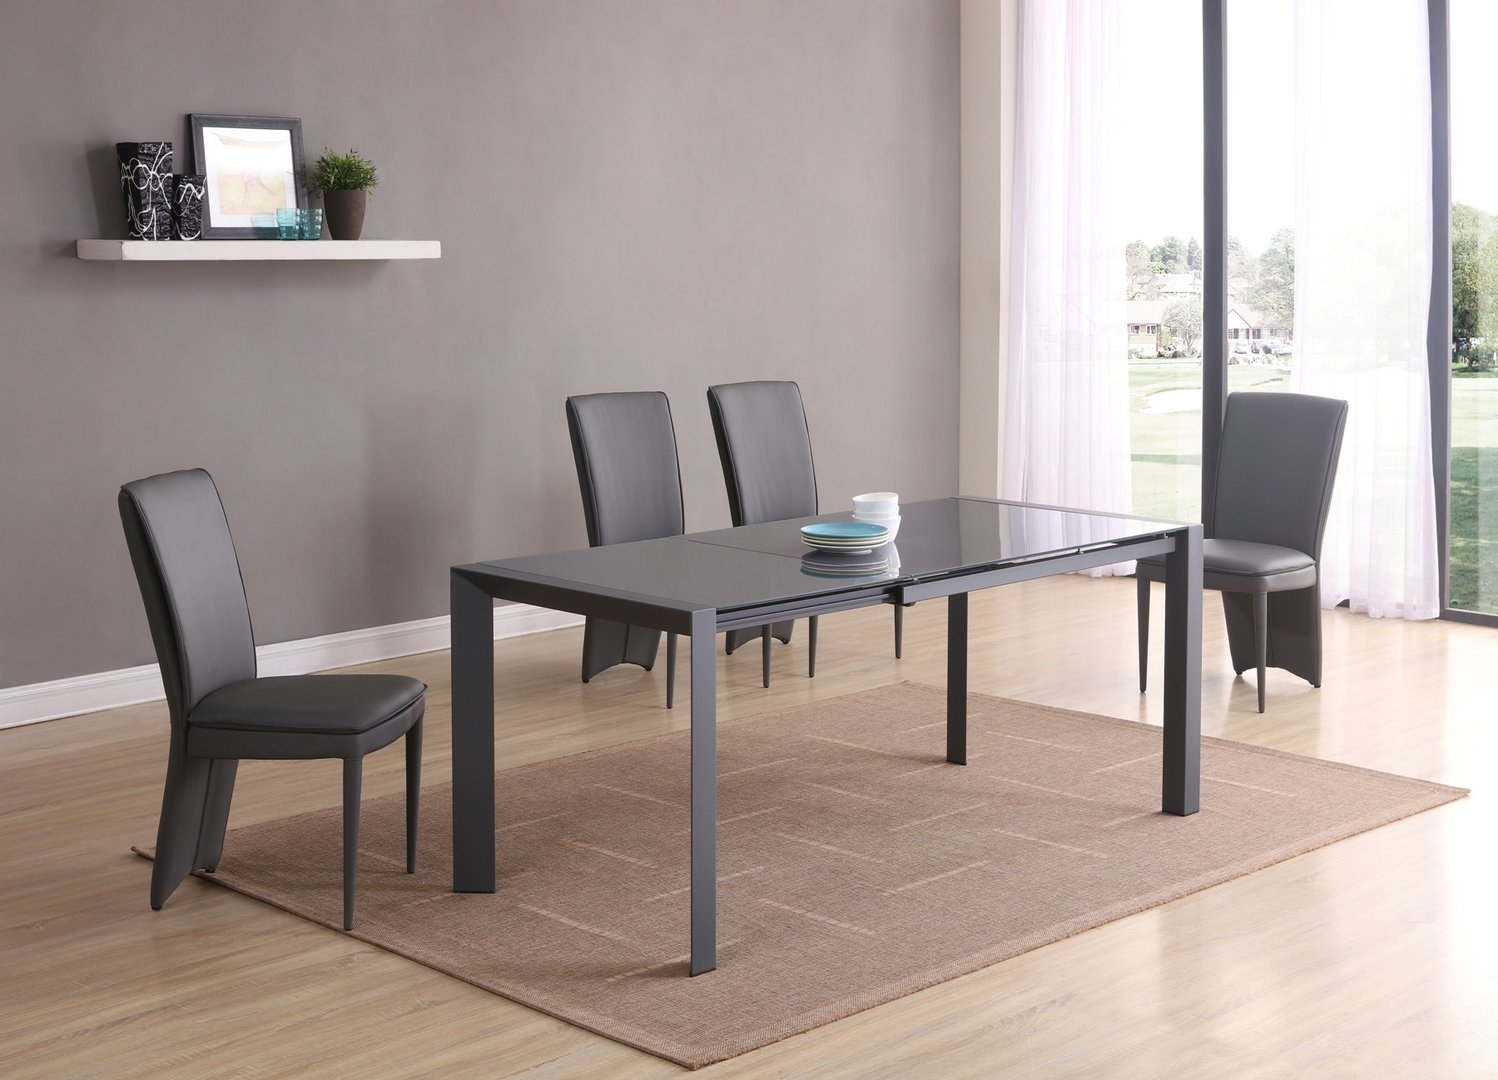 Extending matt grey glass dining table and 6 grey chairs